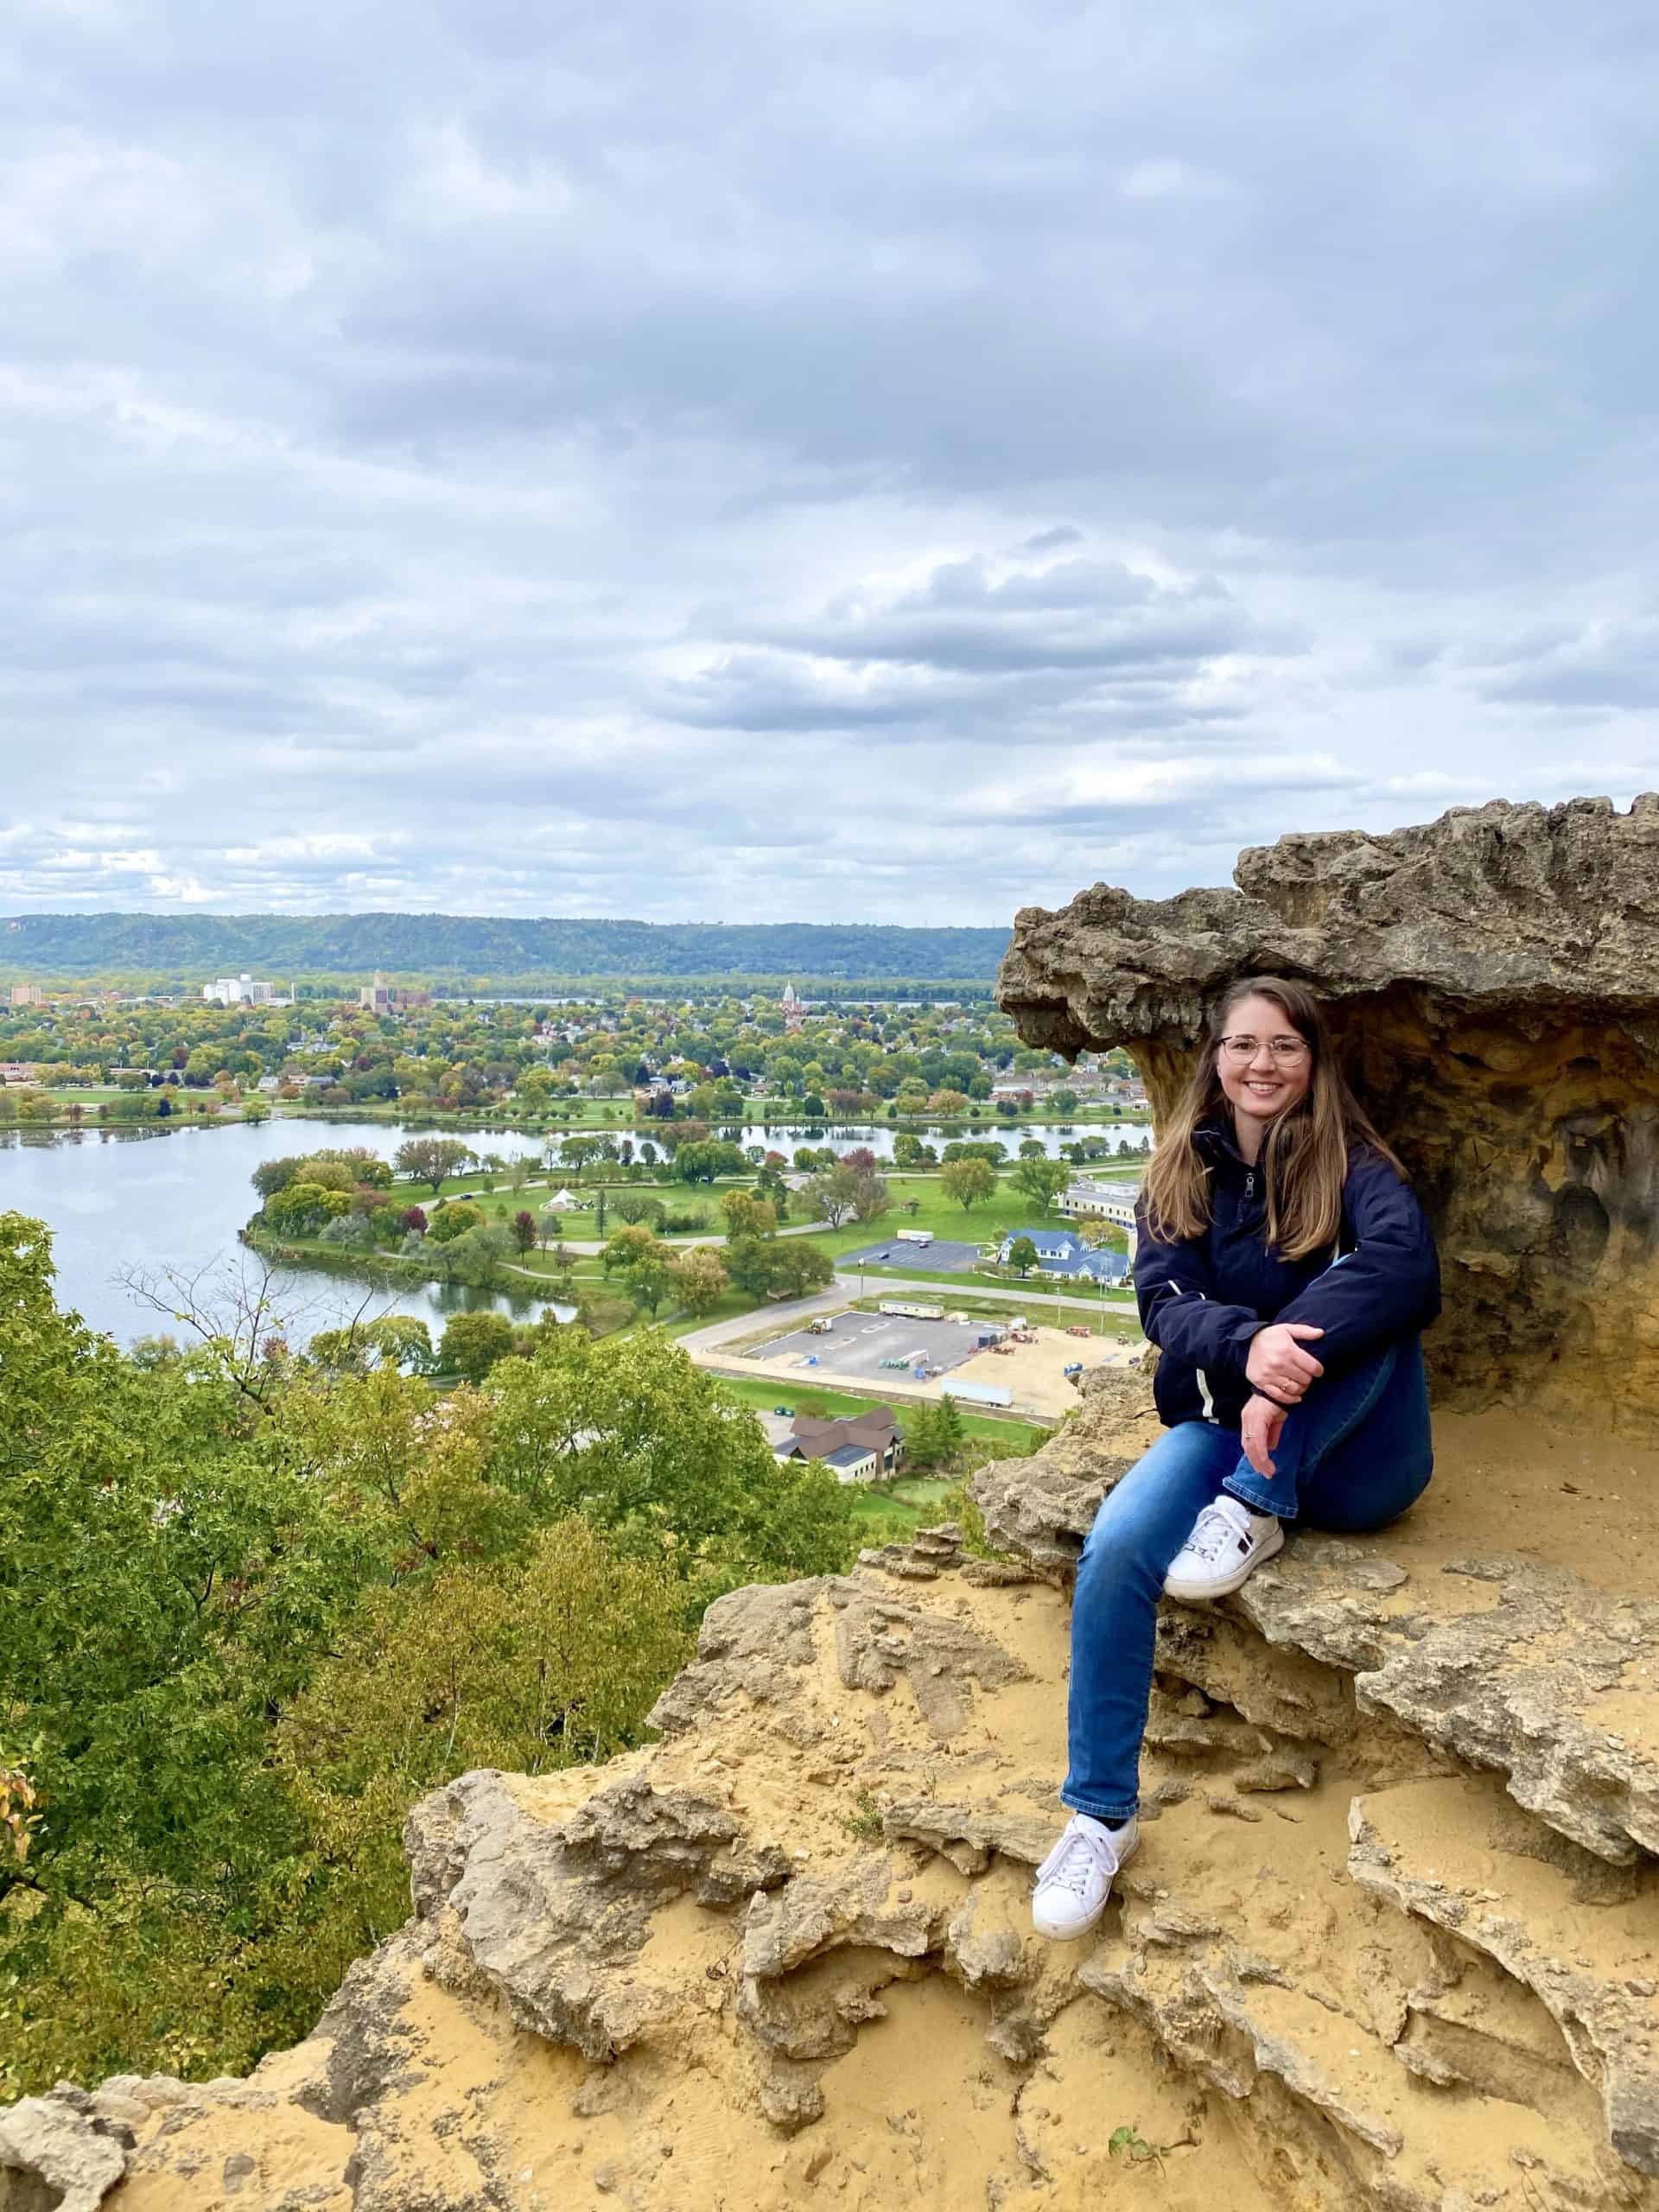 things to do in winona